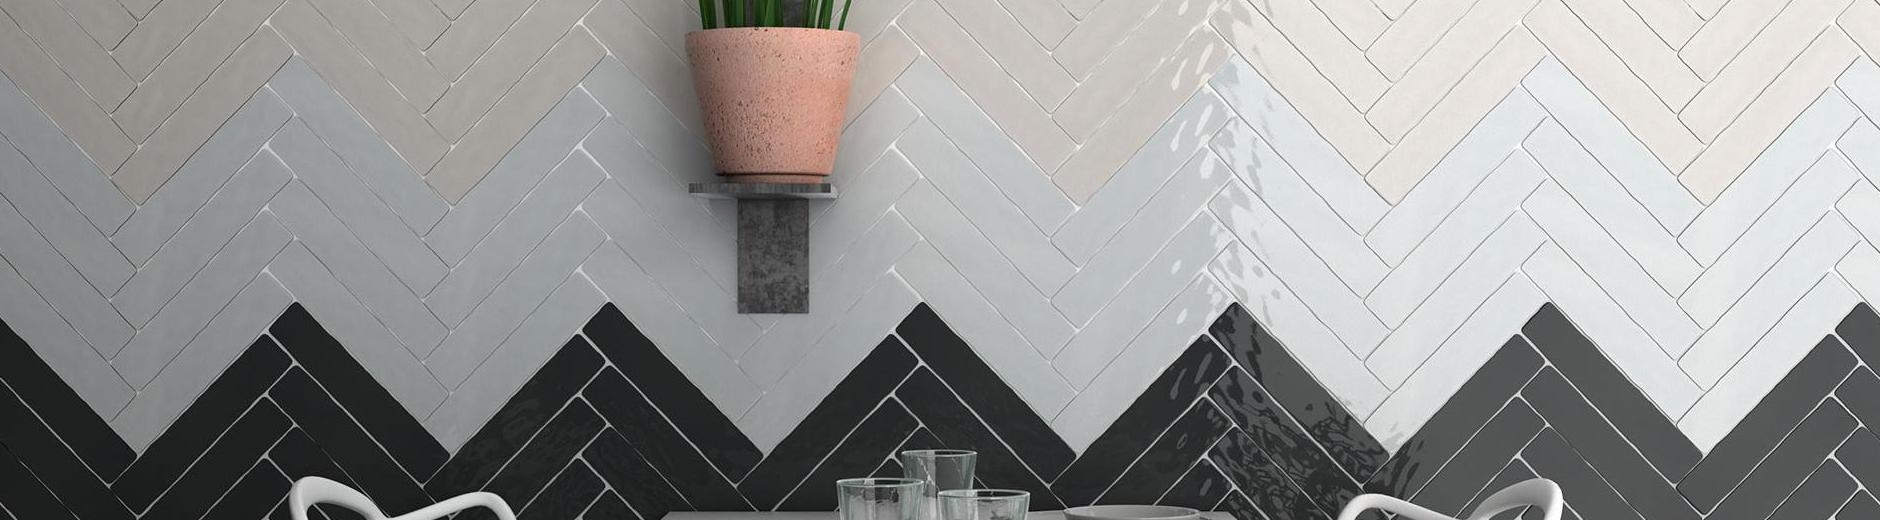 OUR TILE COLLECTION